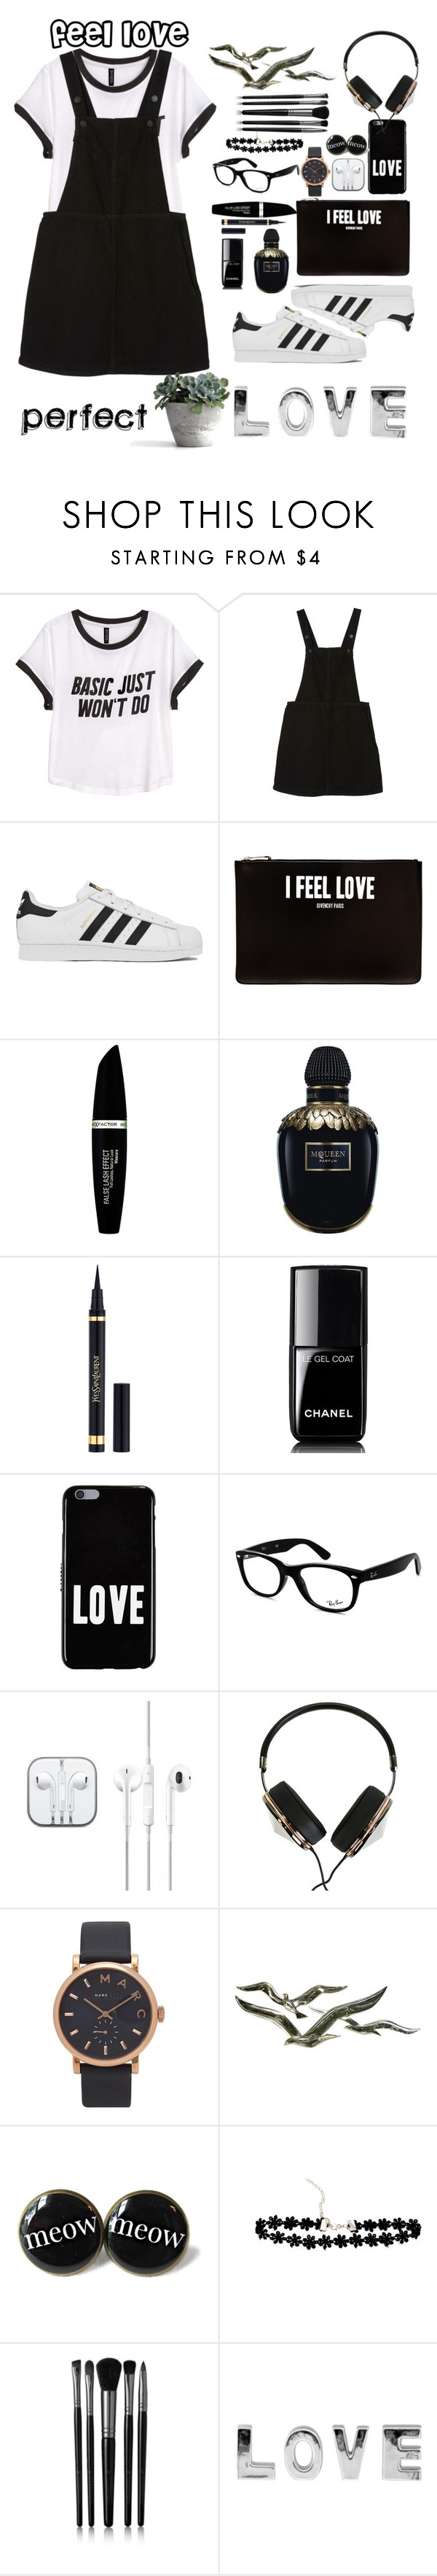 """""""feel the good sides of love♡♡♡"""" by gracekellyho ❤ liked on Polyvore featuring H&M, Monki, adidas, Givenchy, Max Factor, Alexander McQueen, Chanel, Ray-Ban, Frends and Marc Jacobs"""